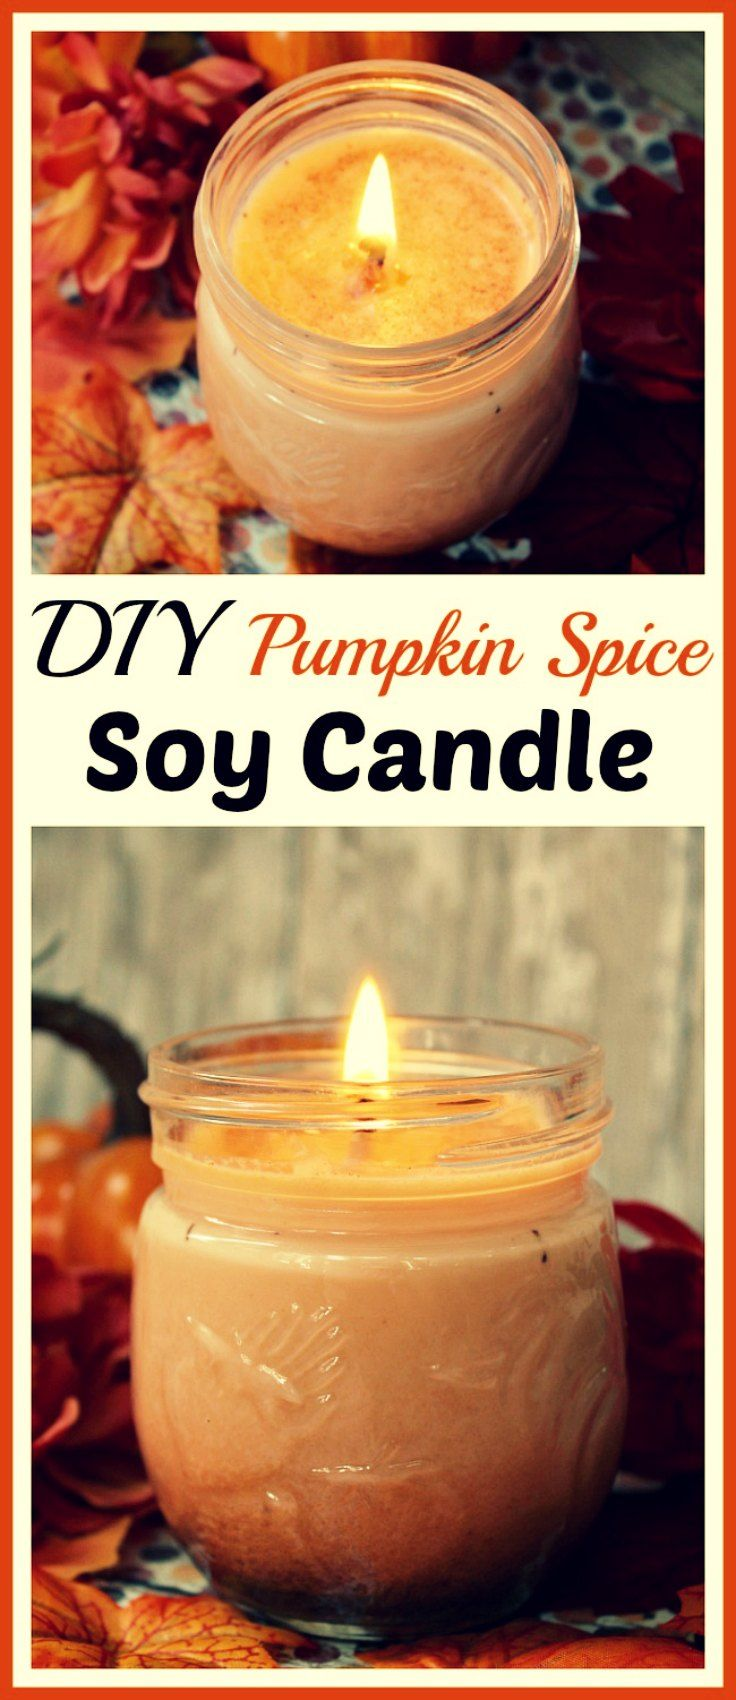 - DIY Pumpkin spice soy candle -  This homemade pumpkin spice candle is a soy candle, which means its much safer than traditional paraffin candles. Paraffin wax candles produce soot, and also emit harmful chemicals like benzene and toluene. Soy candles also burn longer than paraffin candles. So they're safer and last a longer time. What's not to love!  #candles #velas #DIY #pumpkin #calabaza #soy #soja  via: @acultivatednest